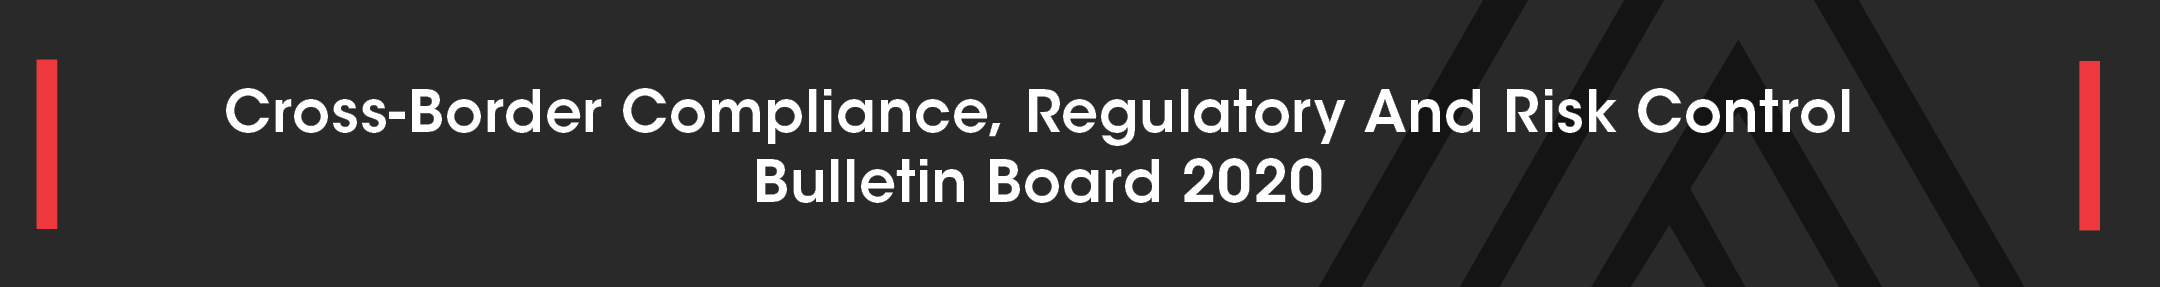 Cross-Border Compliance, Regulatory And Risk Control Bulletin Board 2020